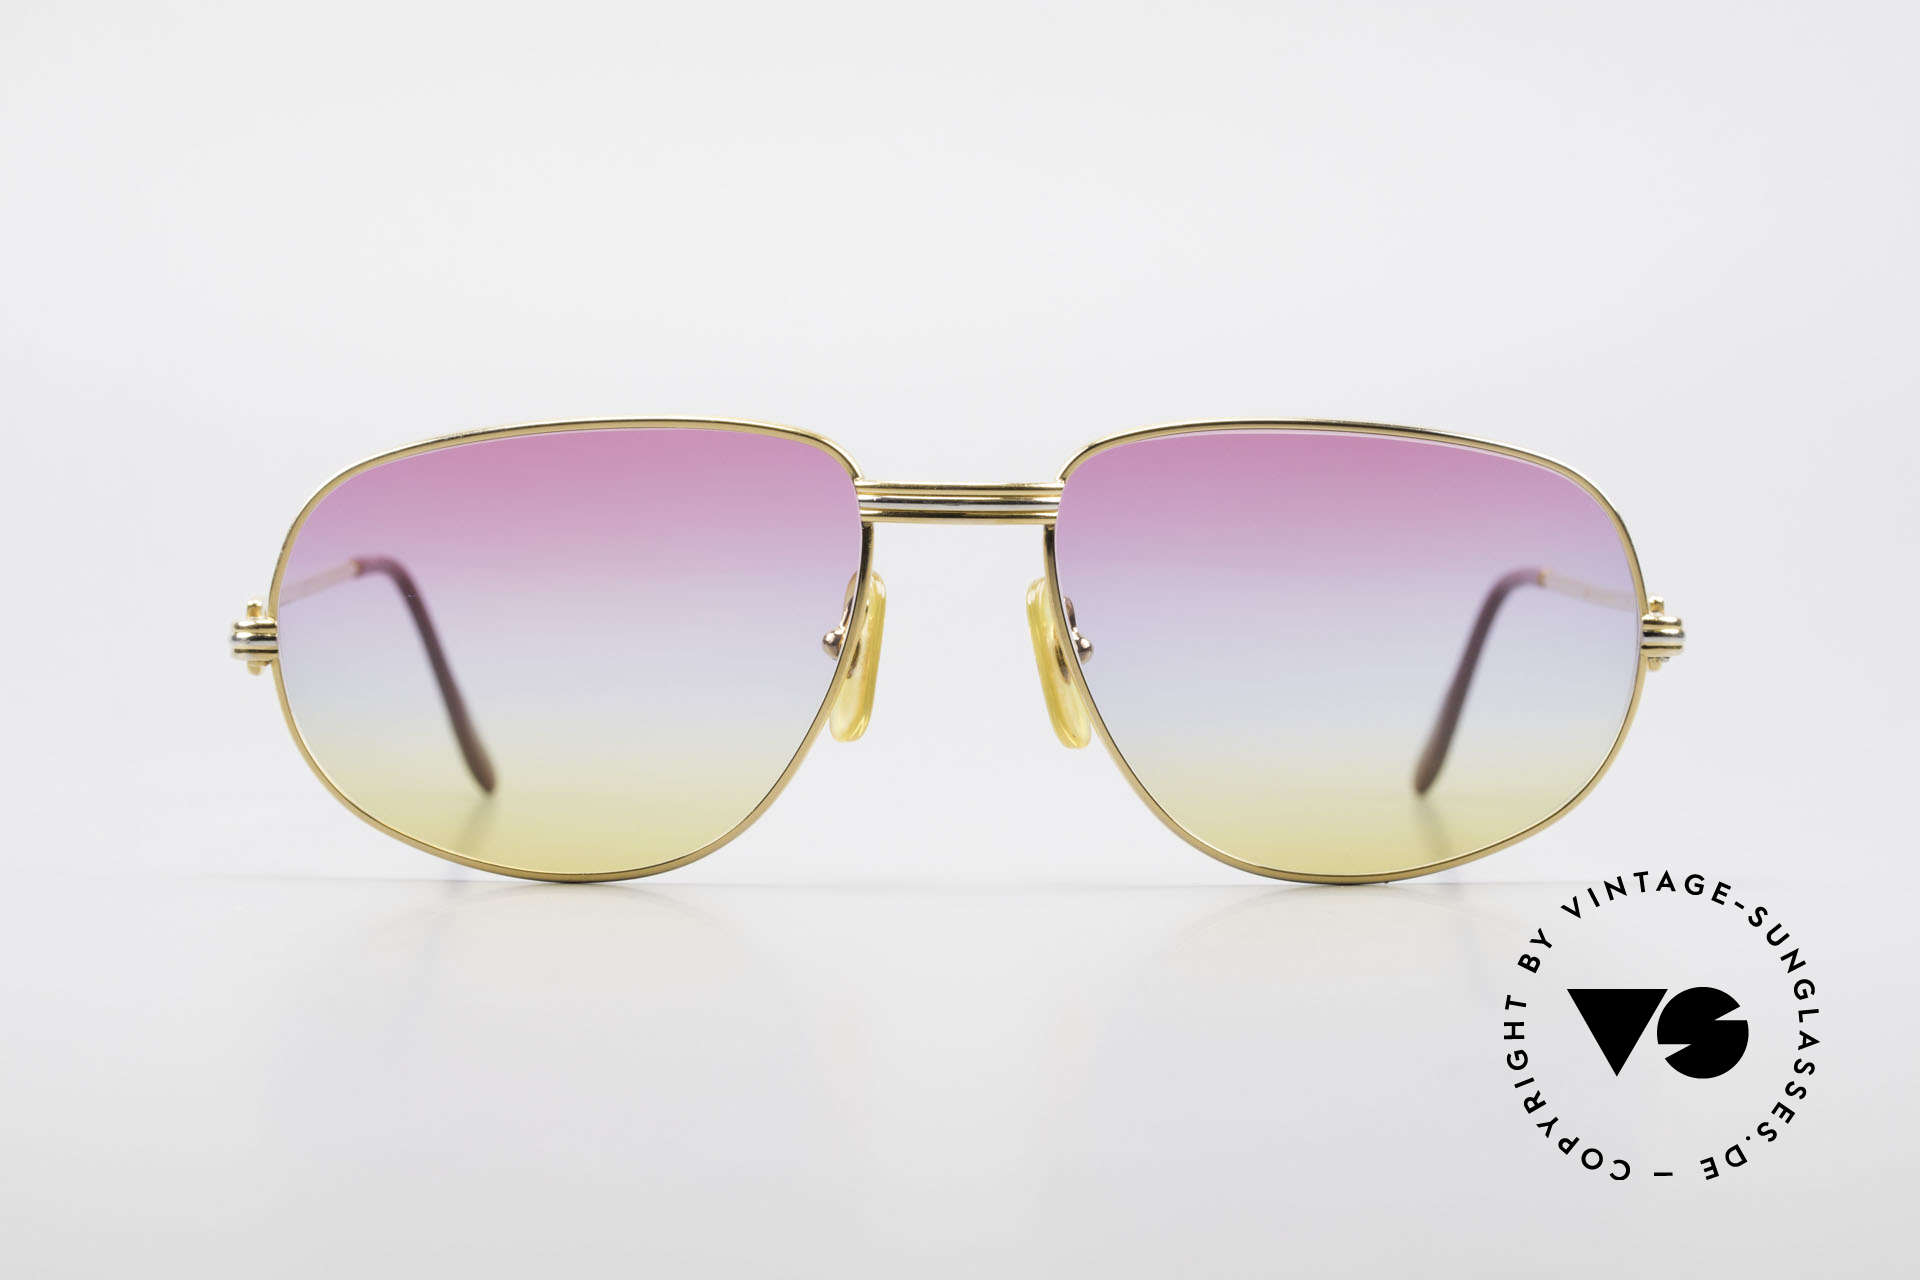 """Cartier Romance LC - L Luxury Sunglasses Gucci Case, mod. """"Romance"""" was launched in 1986 and made till 1997, Made for Men and Women"""